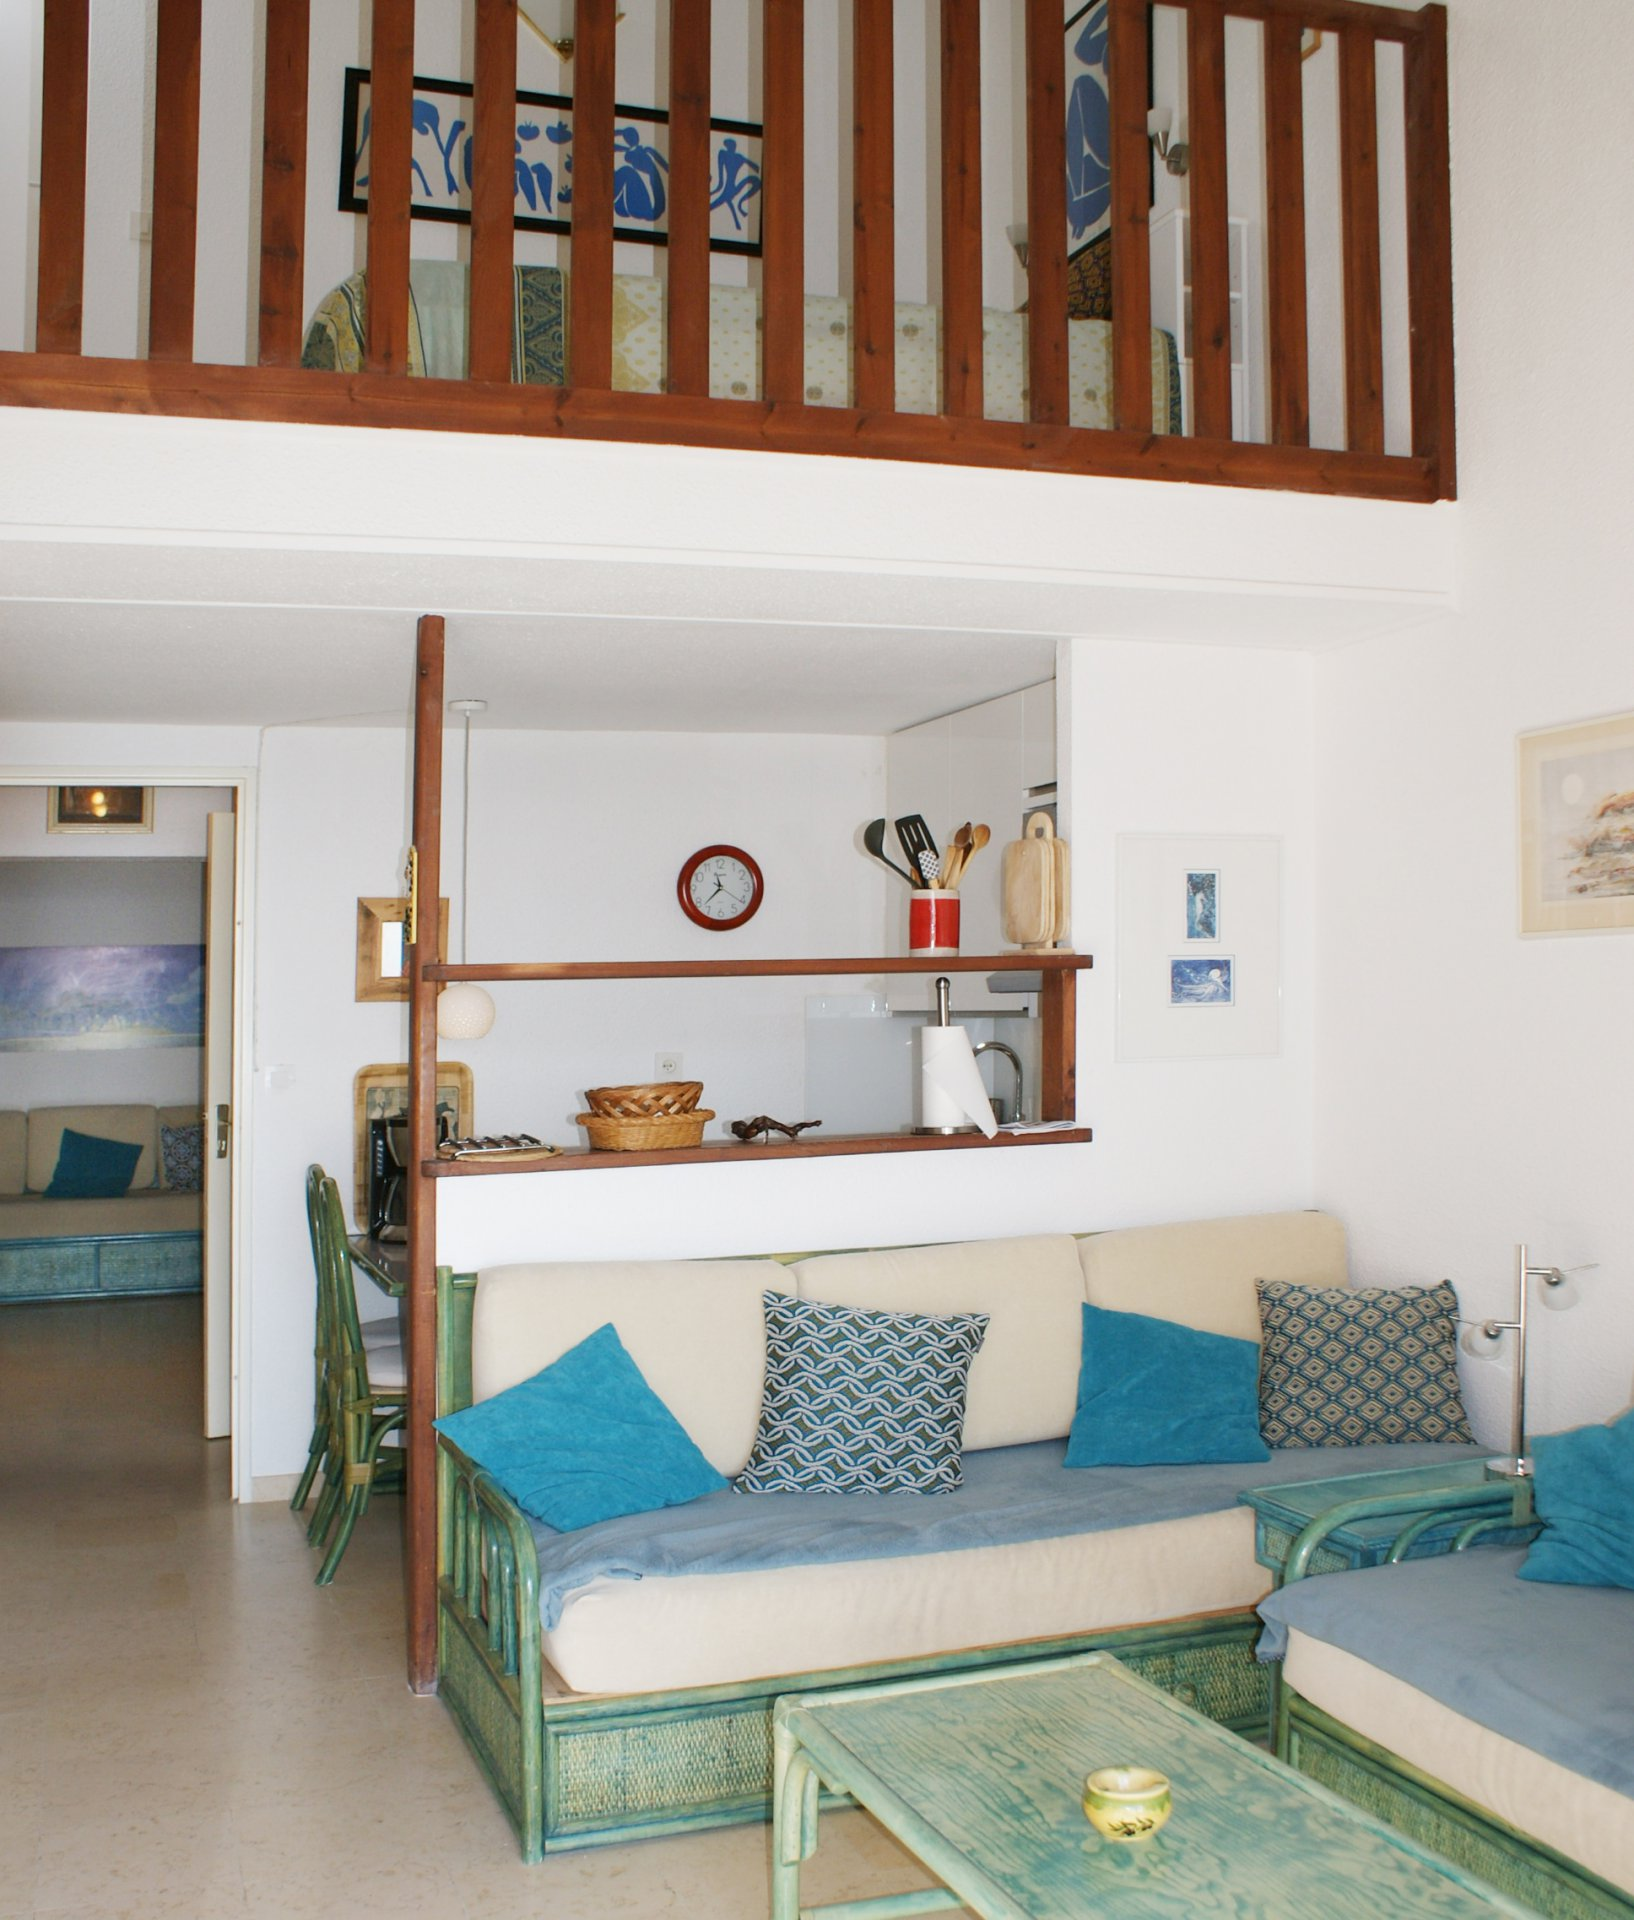 living room, cabin + mezzanine (4 sleeps) terrace,  sea view * MM 02 *